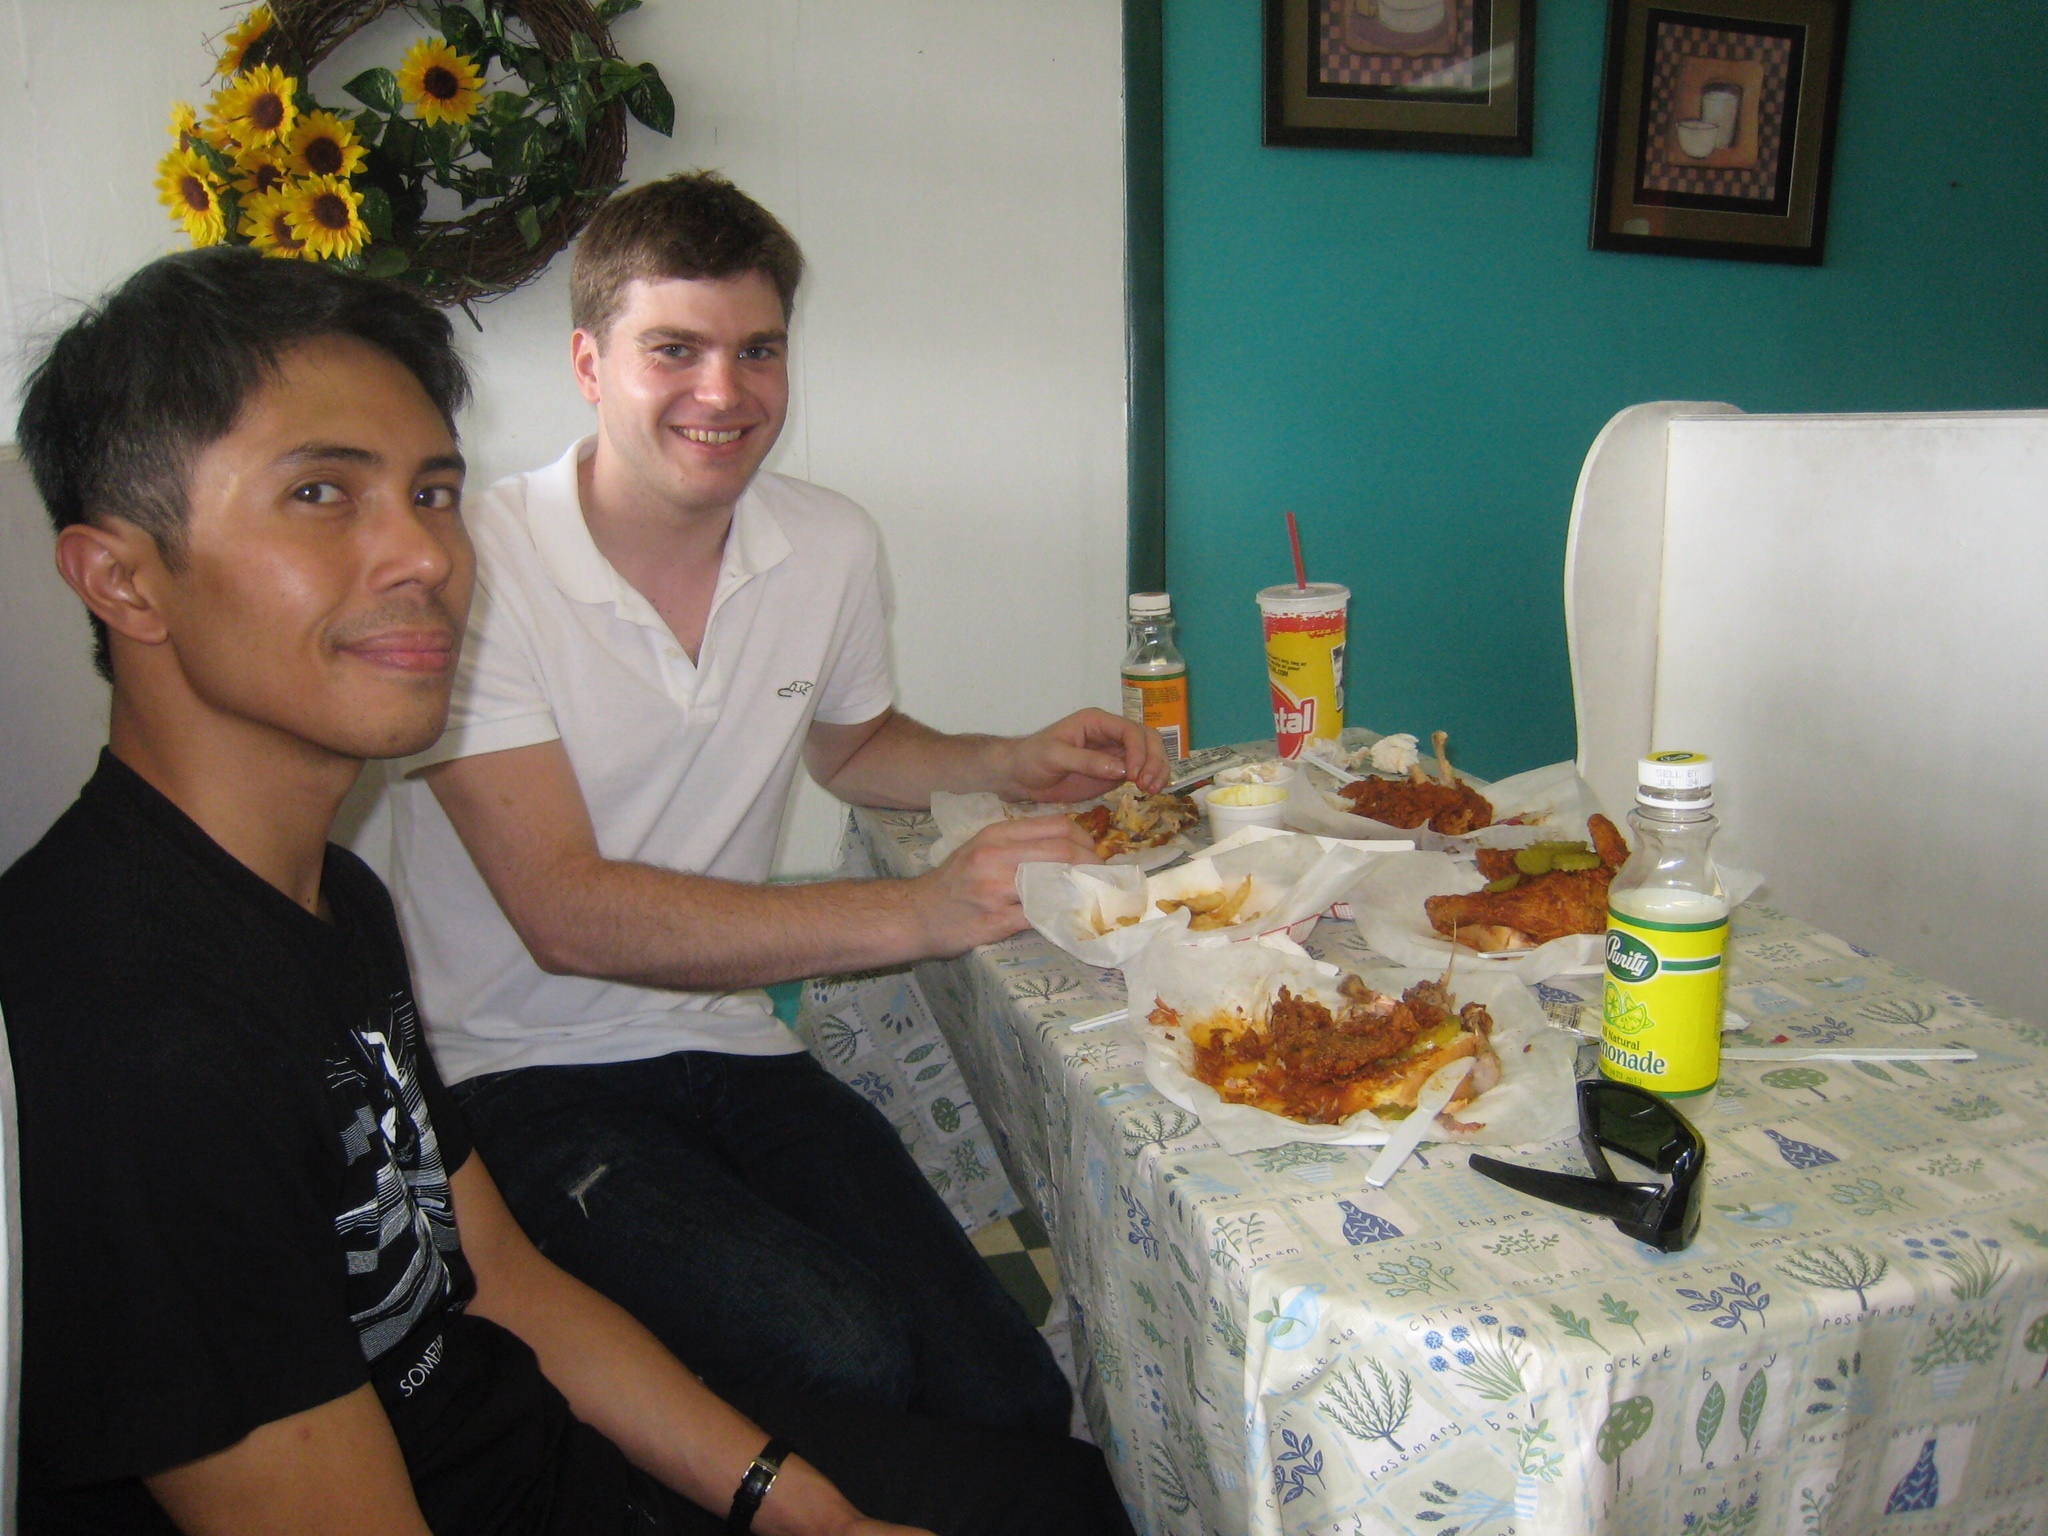 David & Matt enjoying Prince's Hot Chicken